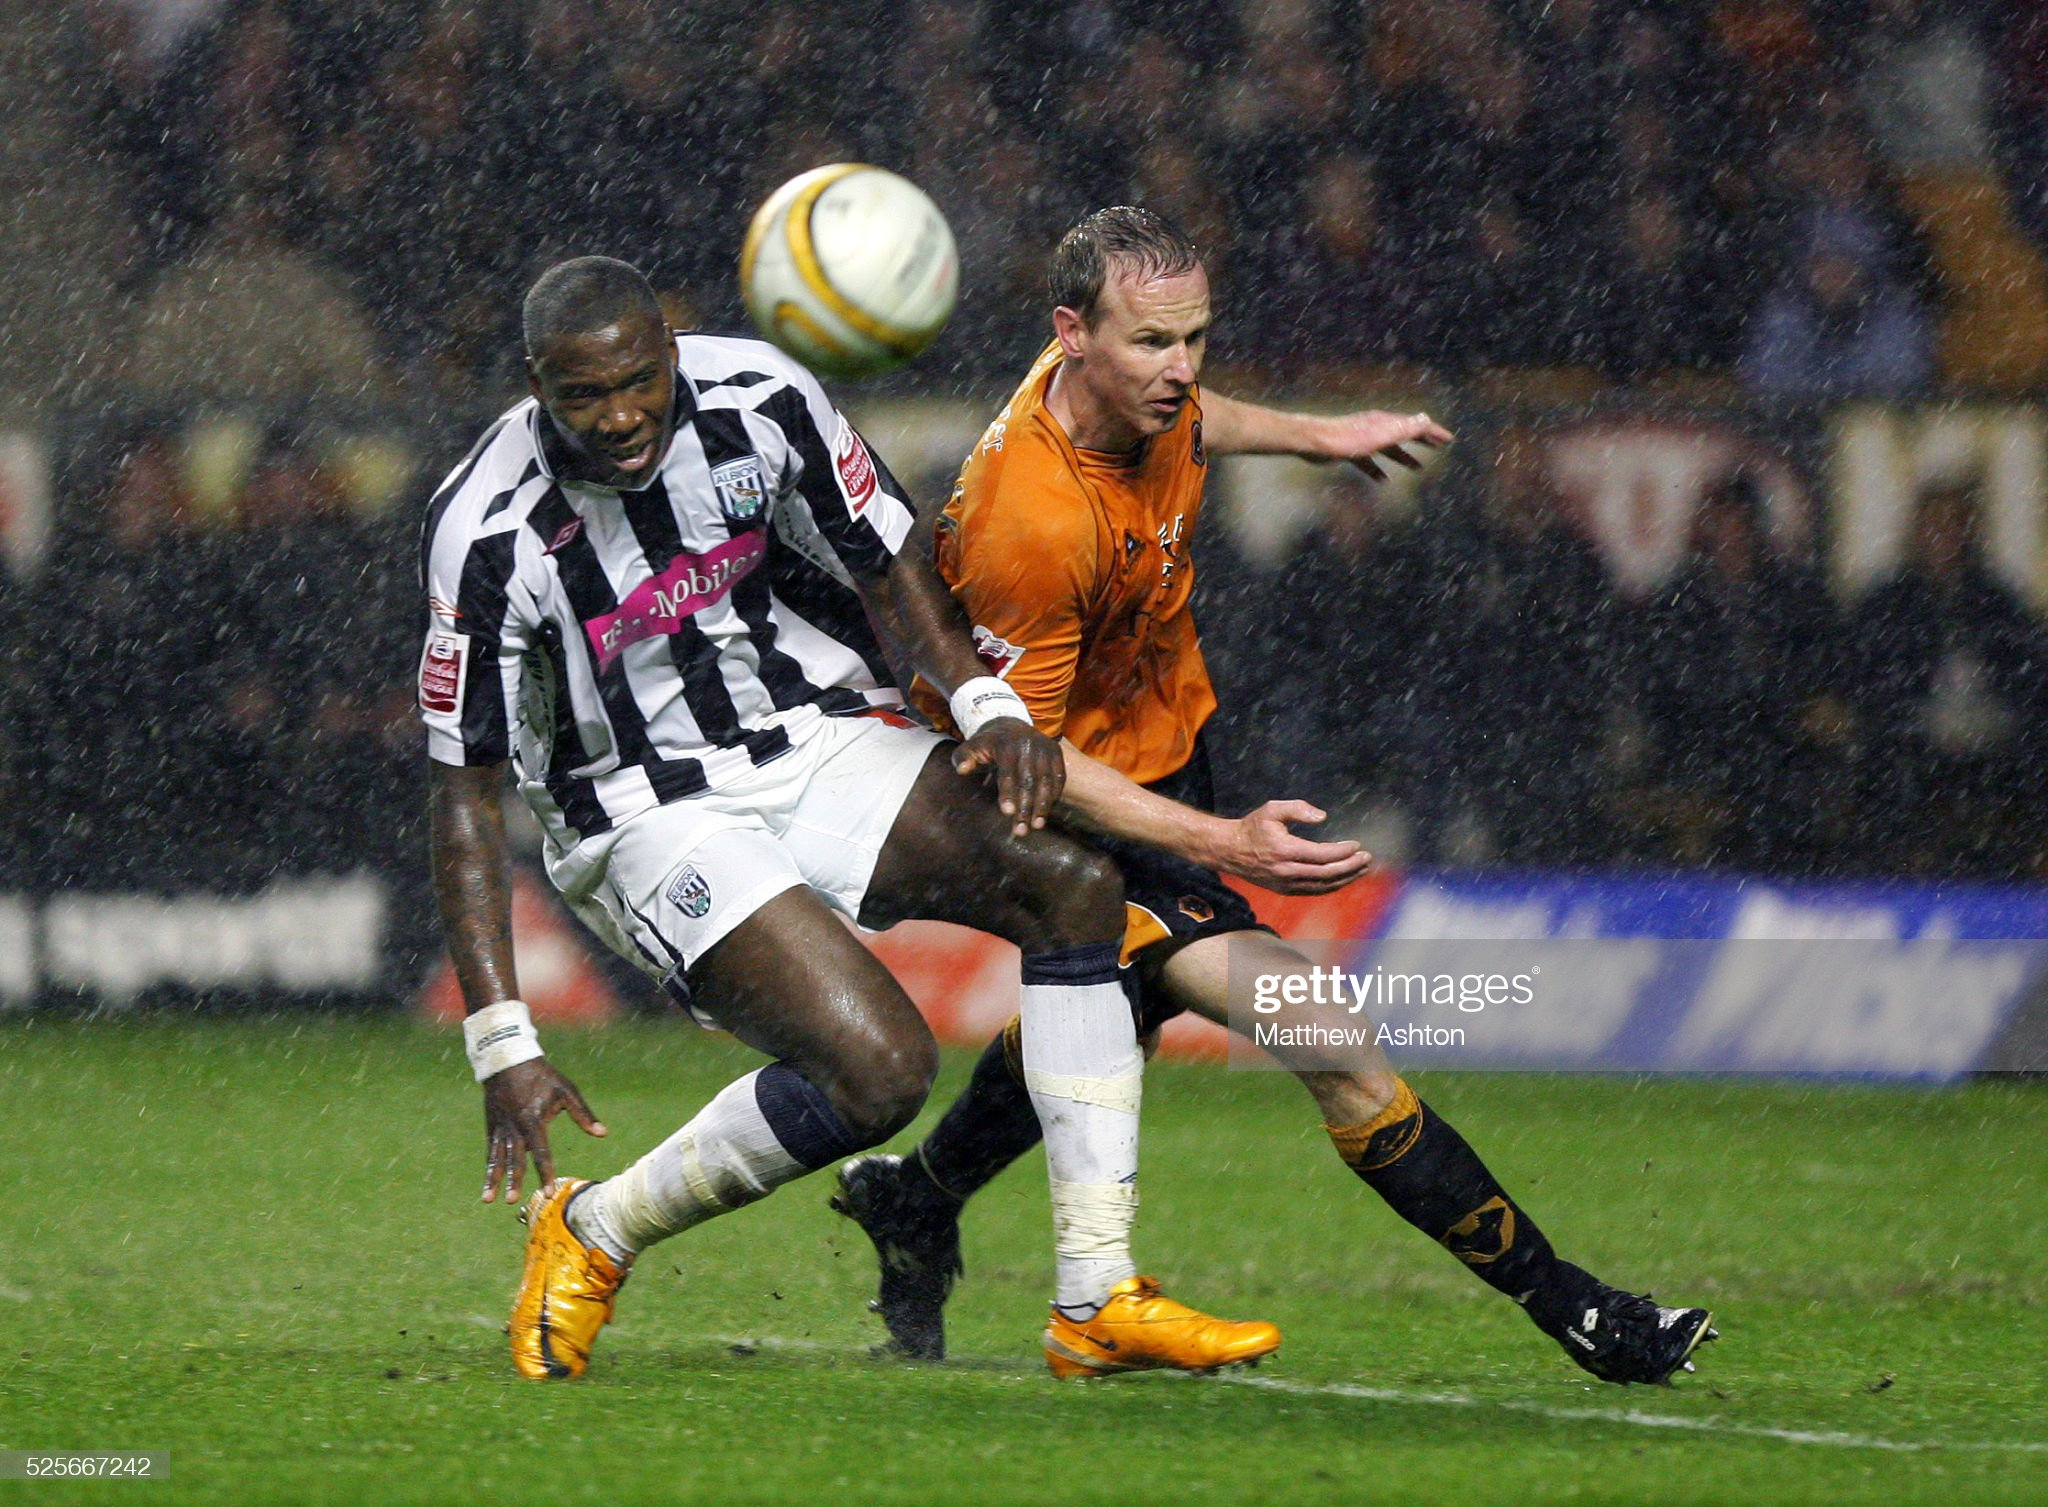 Wolves vs West Brom preview, prediction and odds